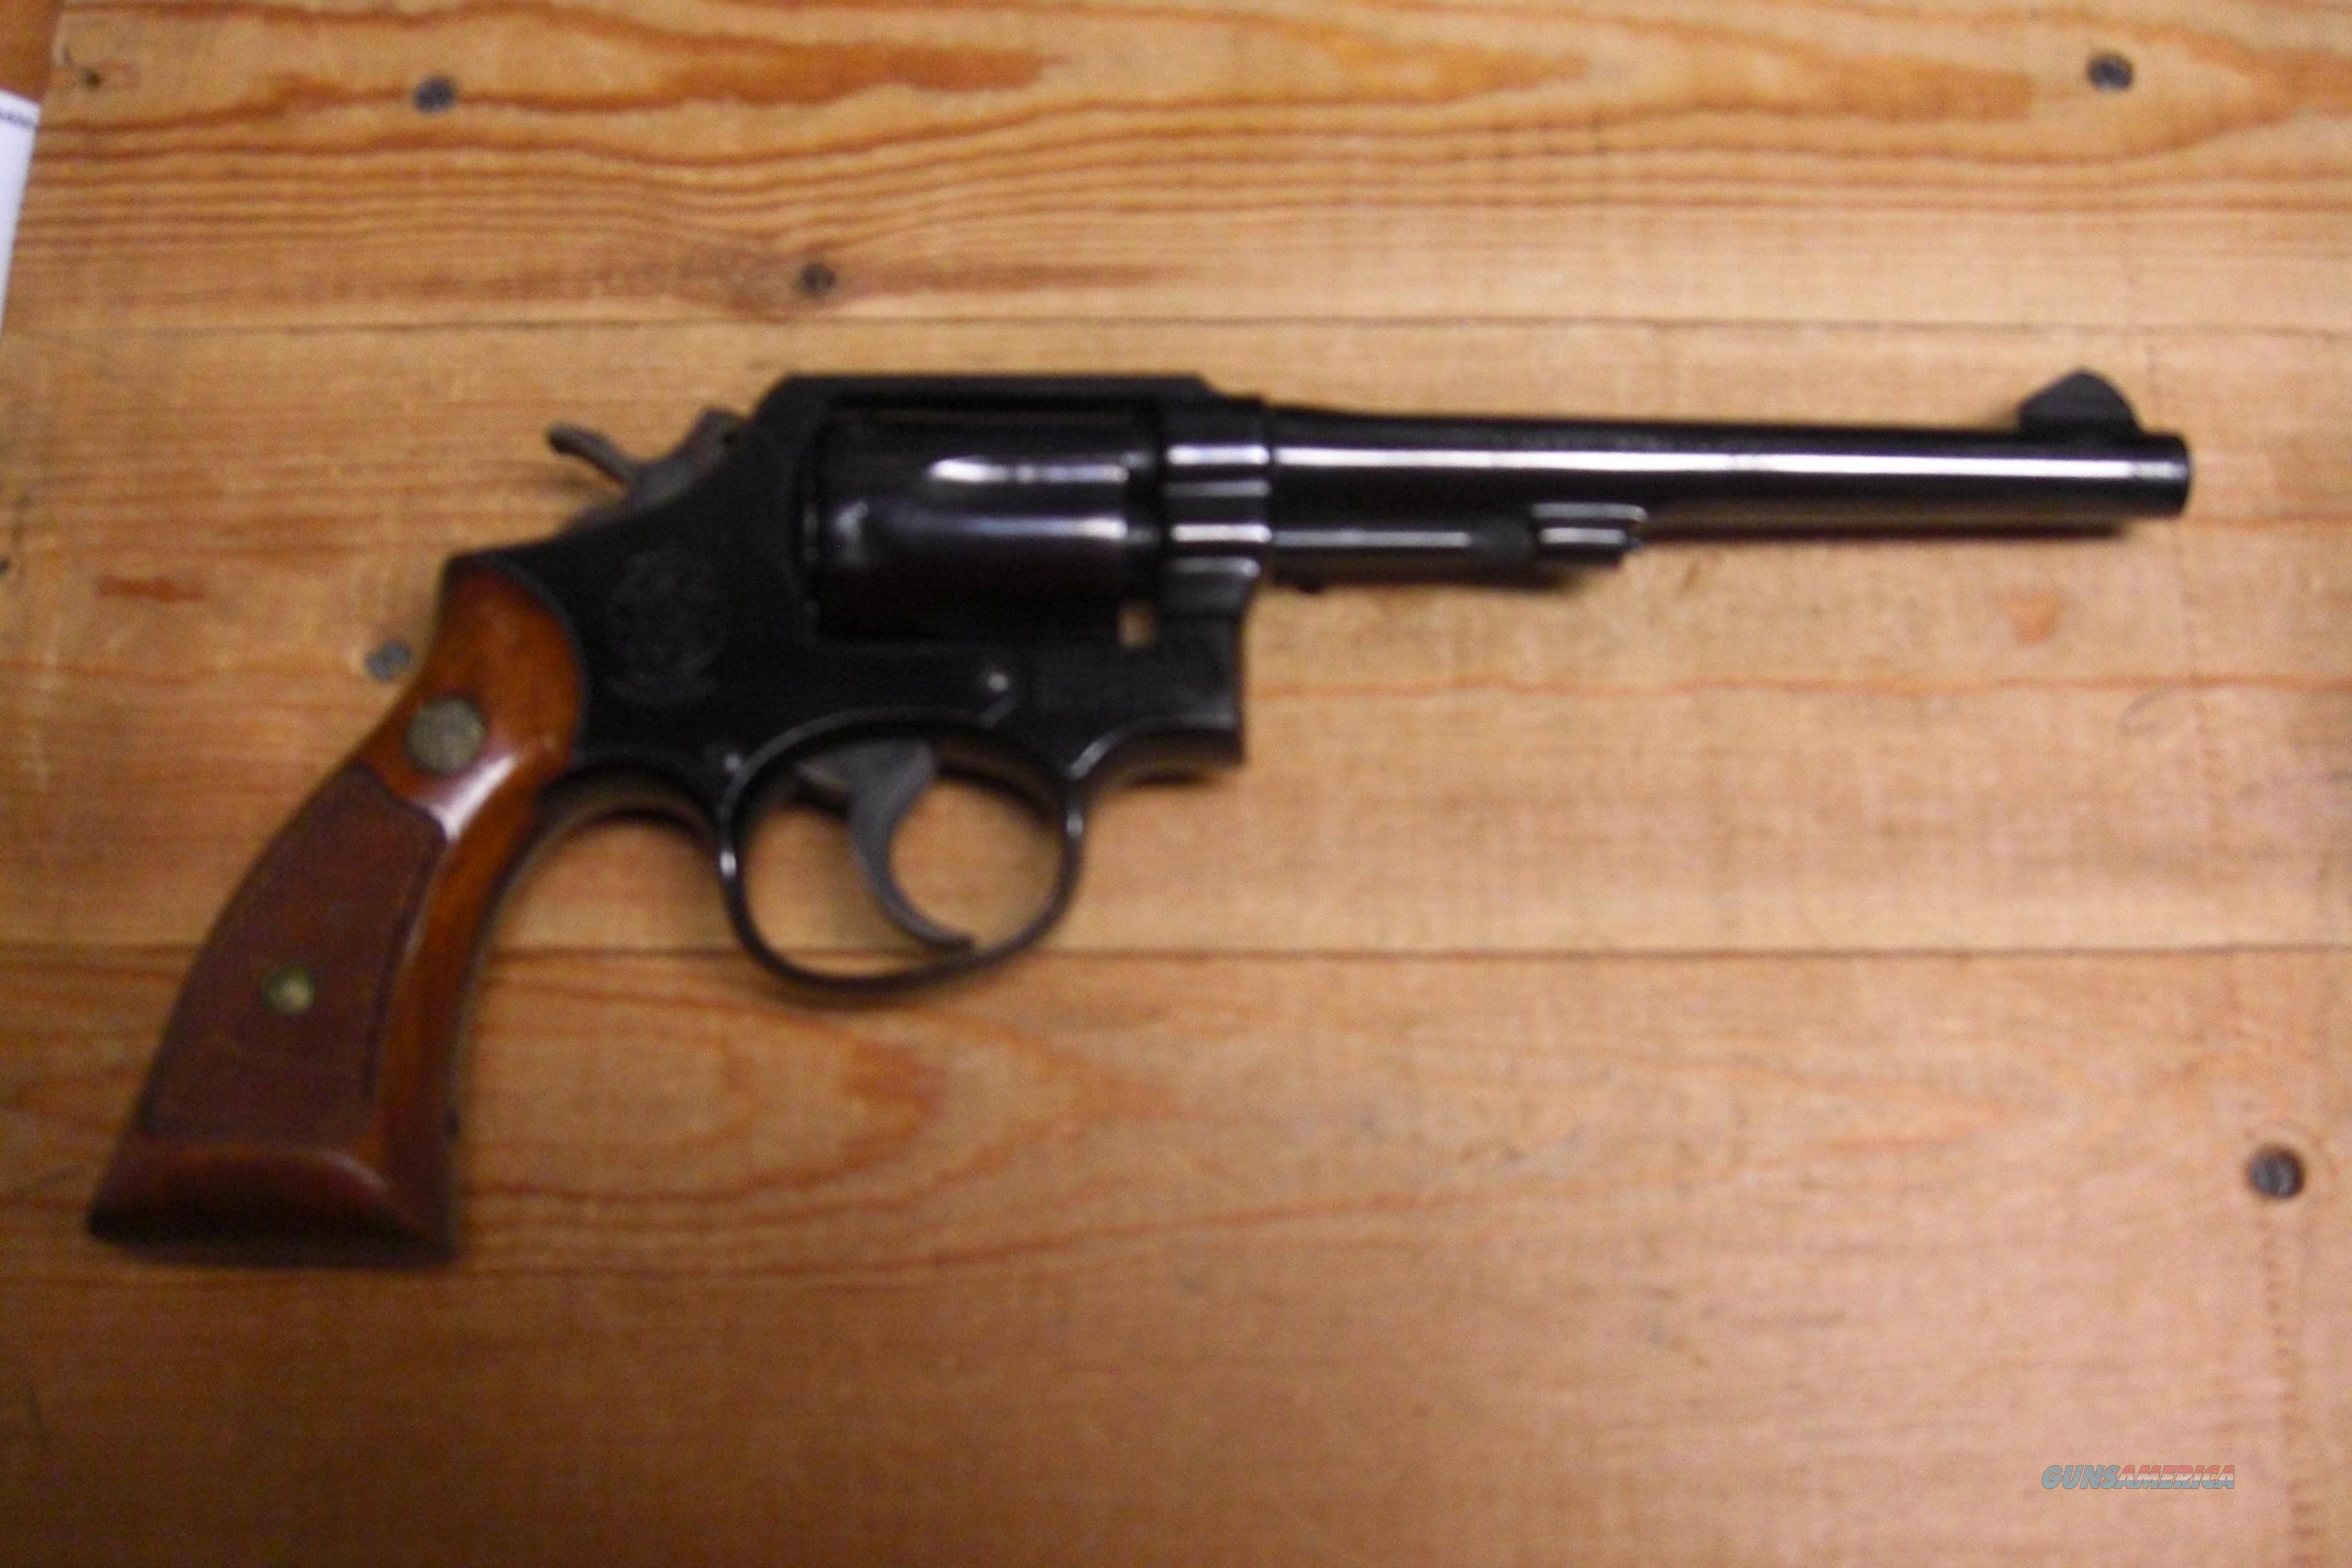 Smith & Wesson 10-5 w/pinned bbl  Guns > Pistols > Smith & Wesson Revolvers > Full Frame Revolver